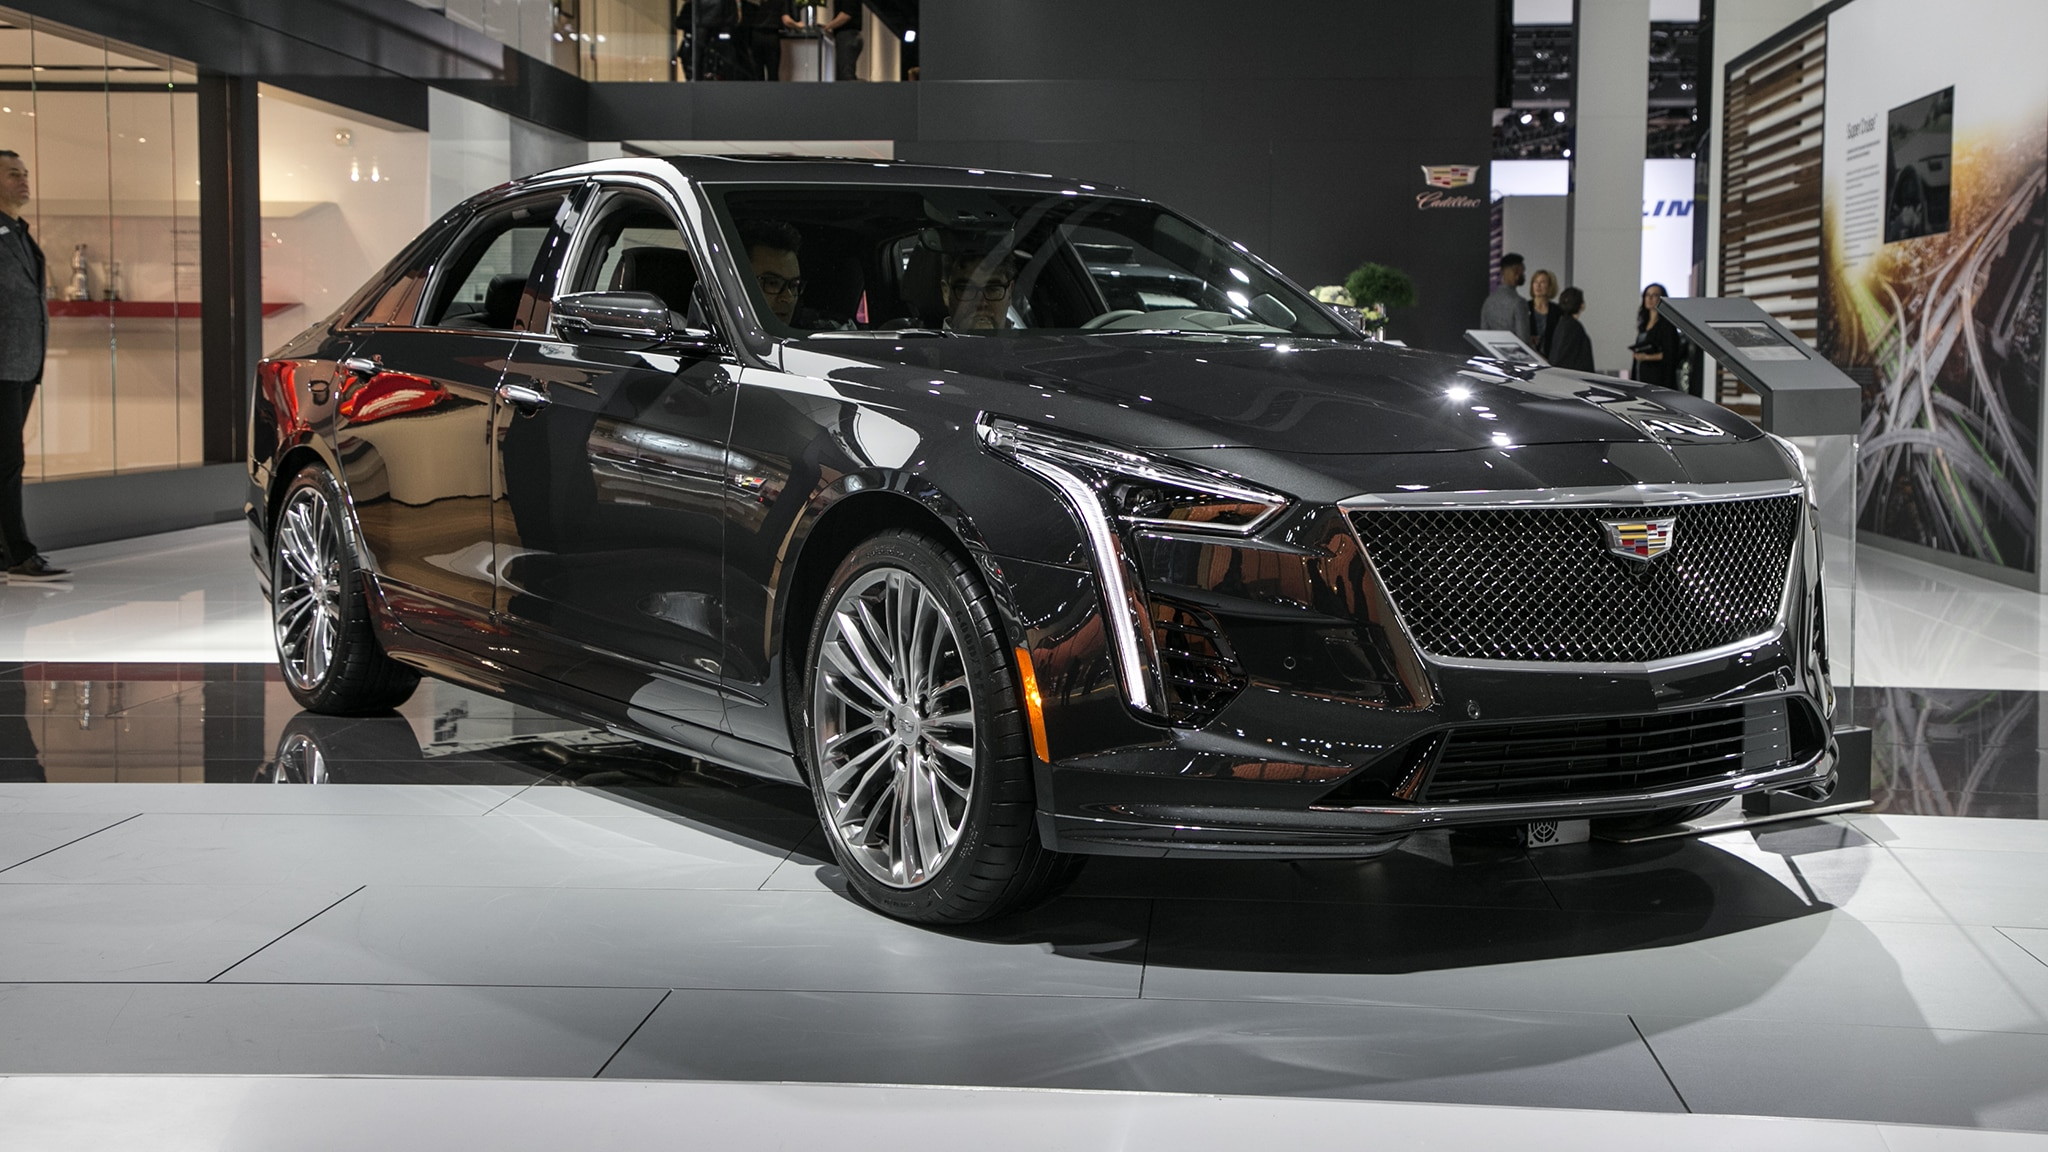 2019 Cadillac CT6 V Is A 550 HP Thing Get One Before Its